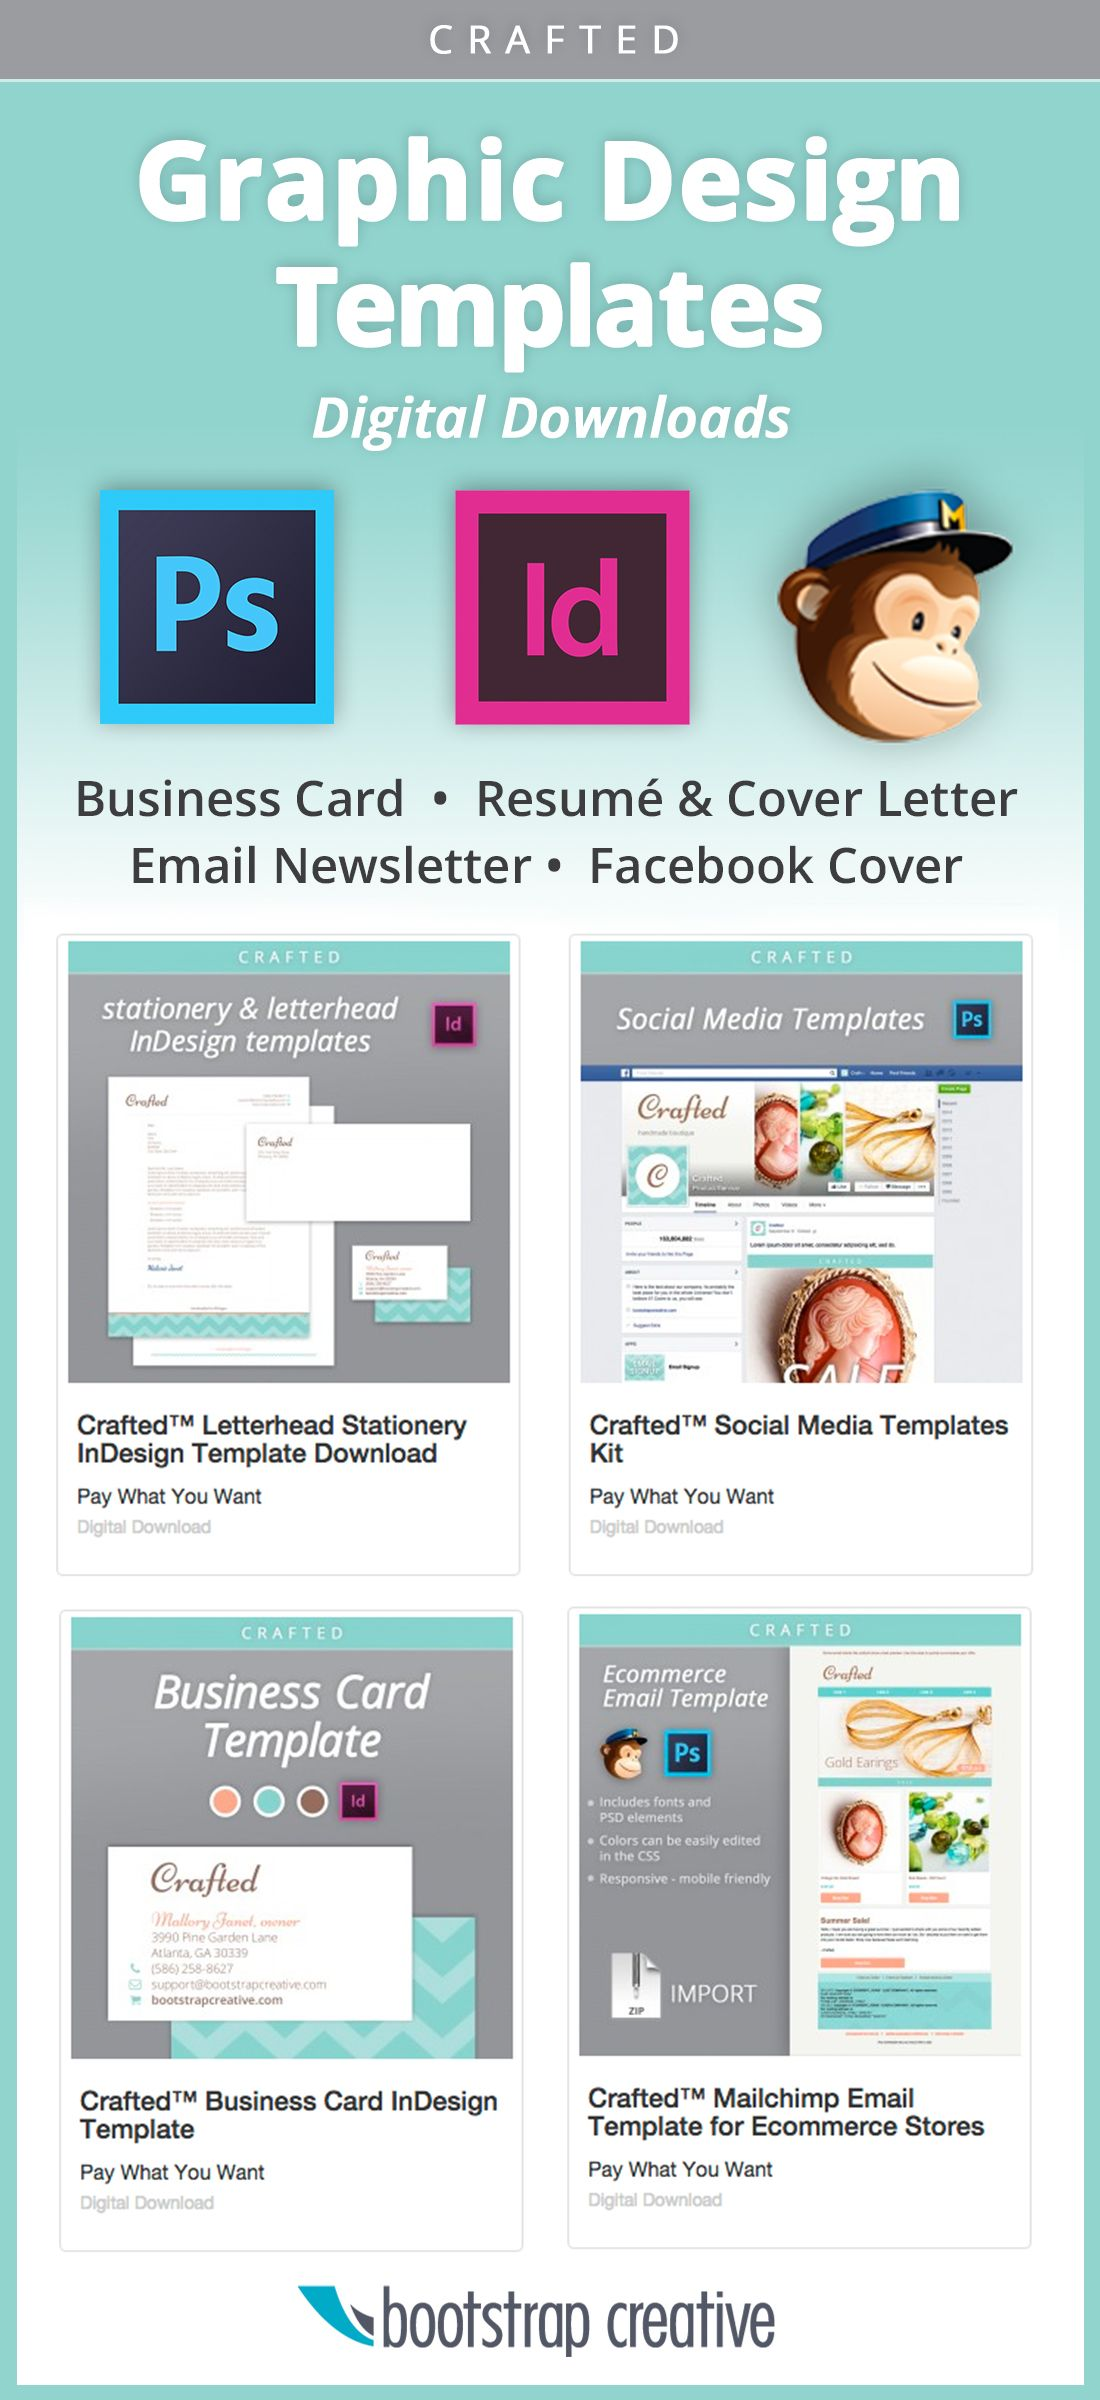 Email newsletter template, business card template, social media templates,  business letterhead, and more; Pay what you want graphic design templates.